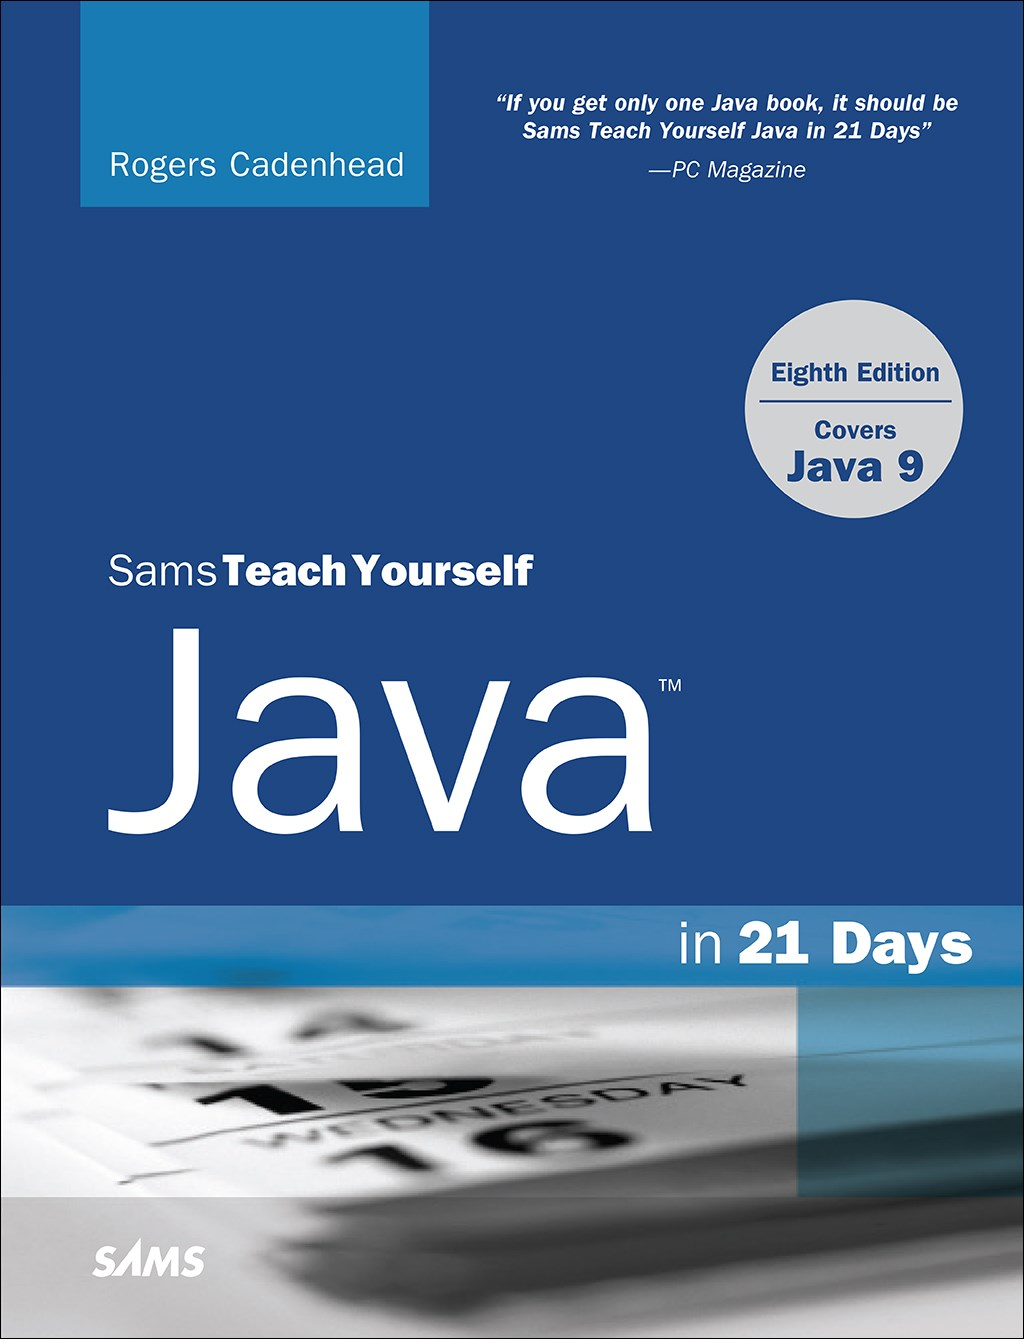 Java in 21 Days, Sams Teach Yourself (Covering Java 9), 8th Edition